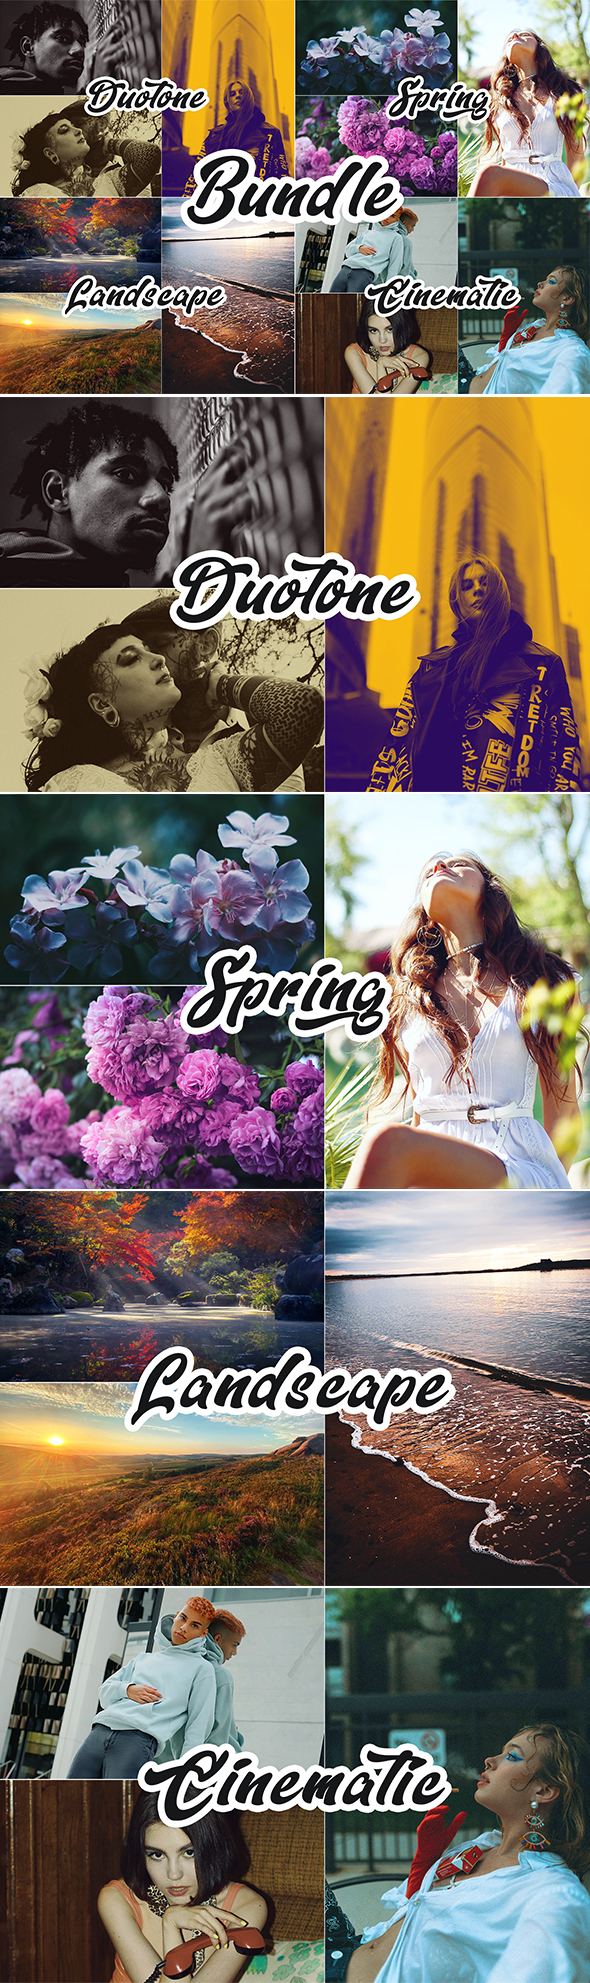 40 Photoshop Actions - Bundle 4 IN 1